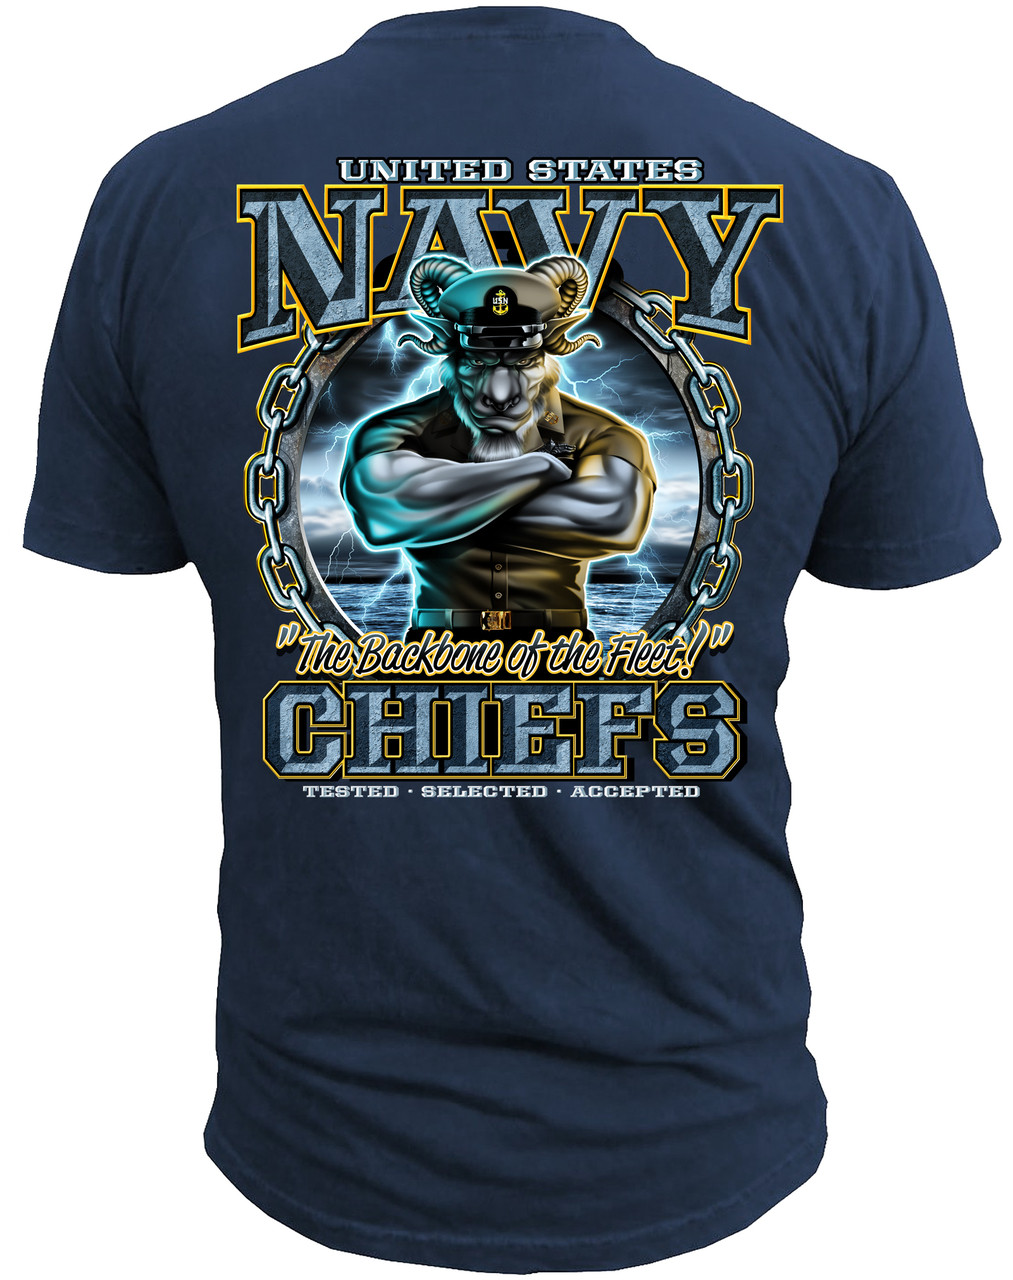 Us Navy Apparel | Us Navy Clothing | American